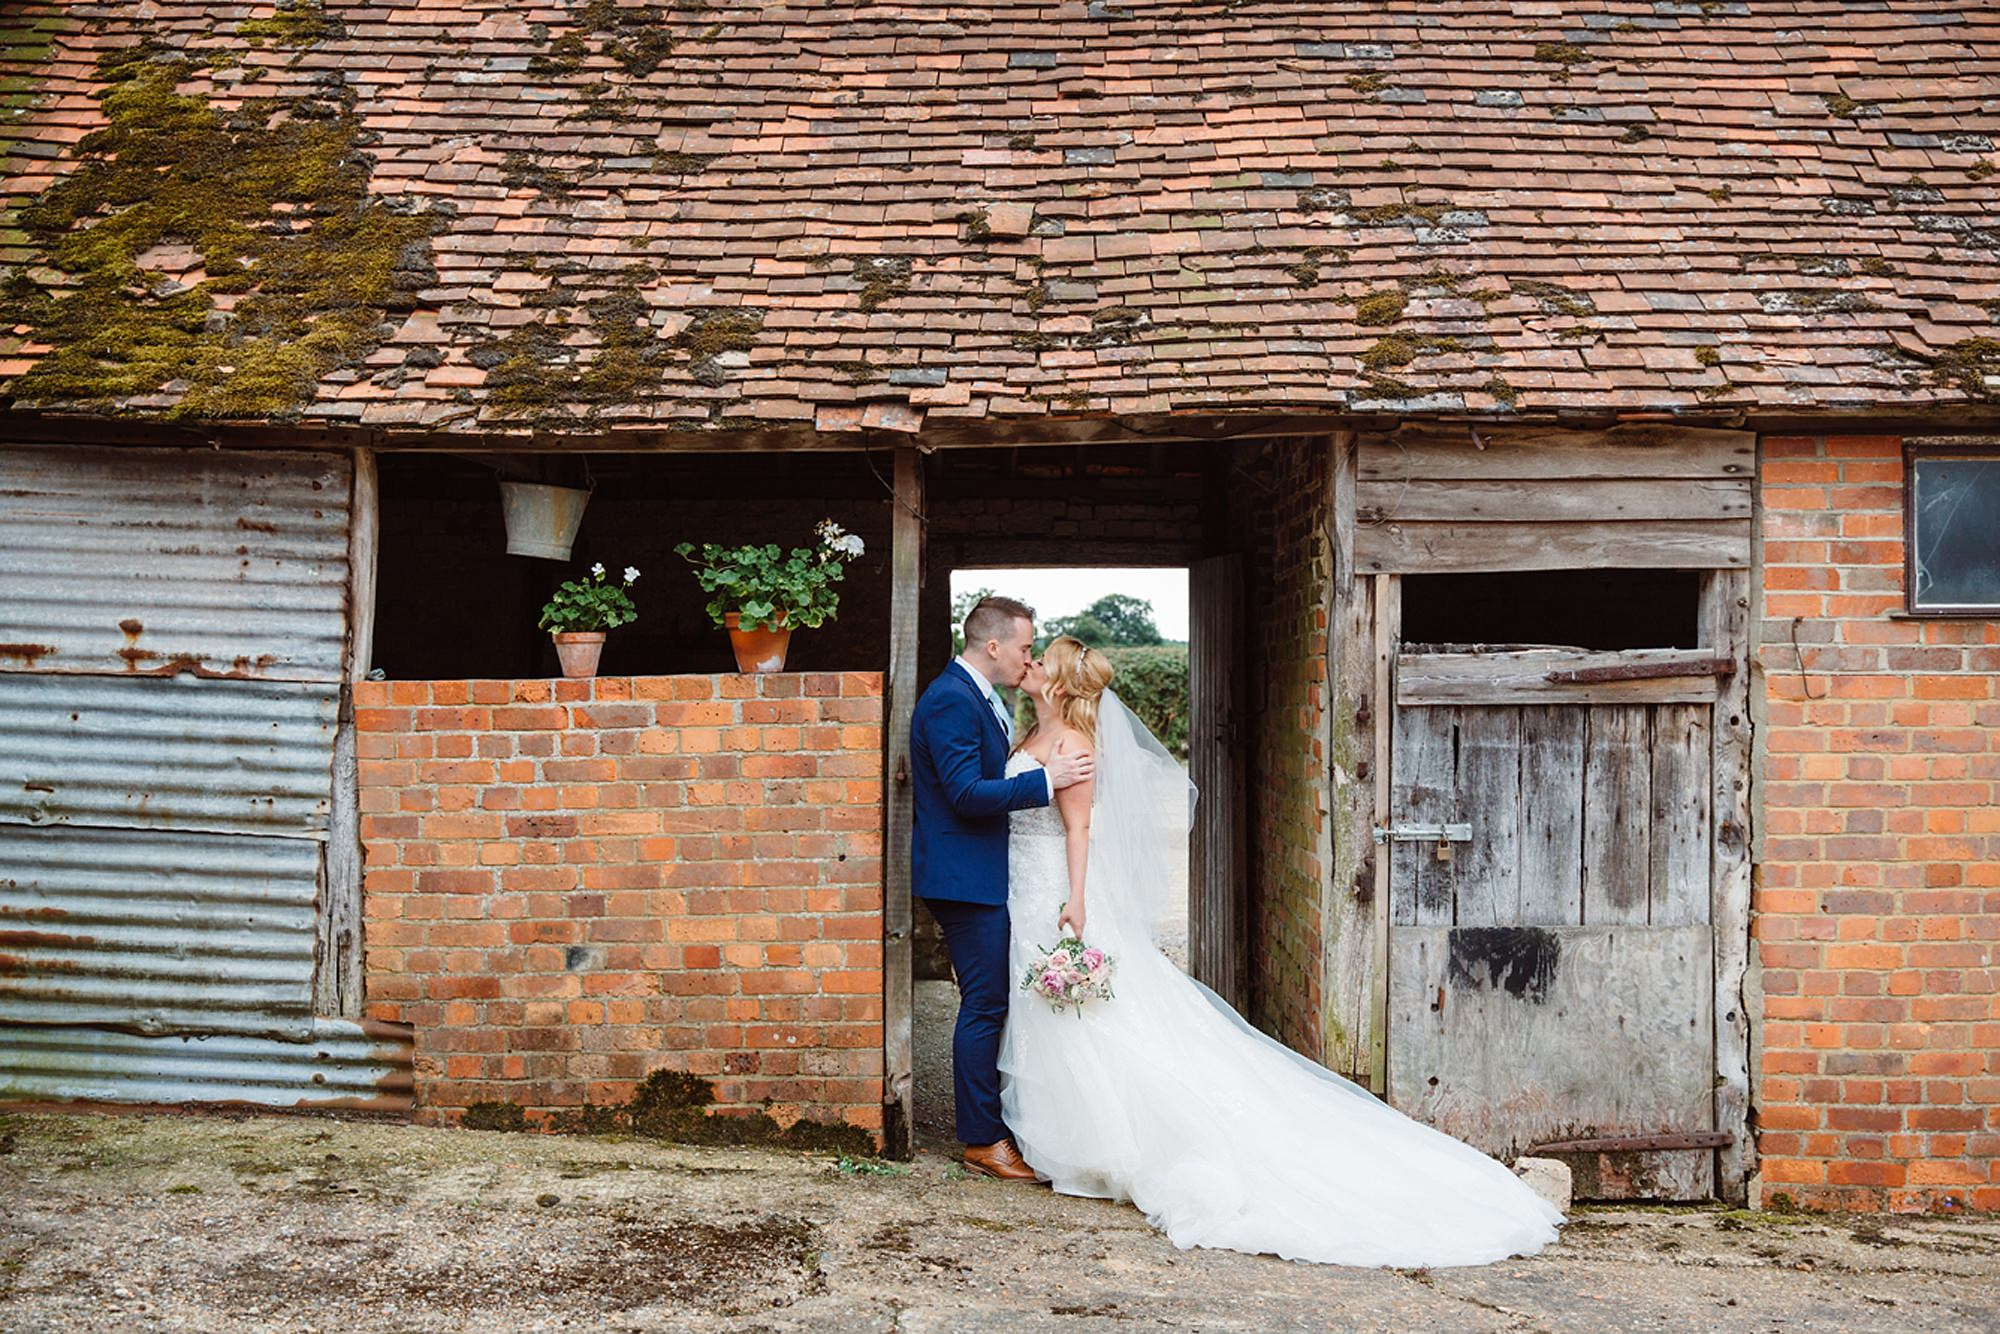 Old Greens Barn Newdigate wedding photography bride and groom in barn